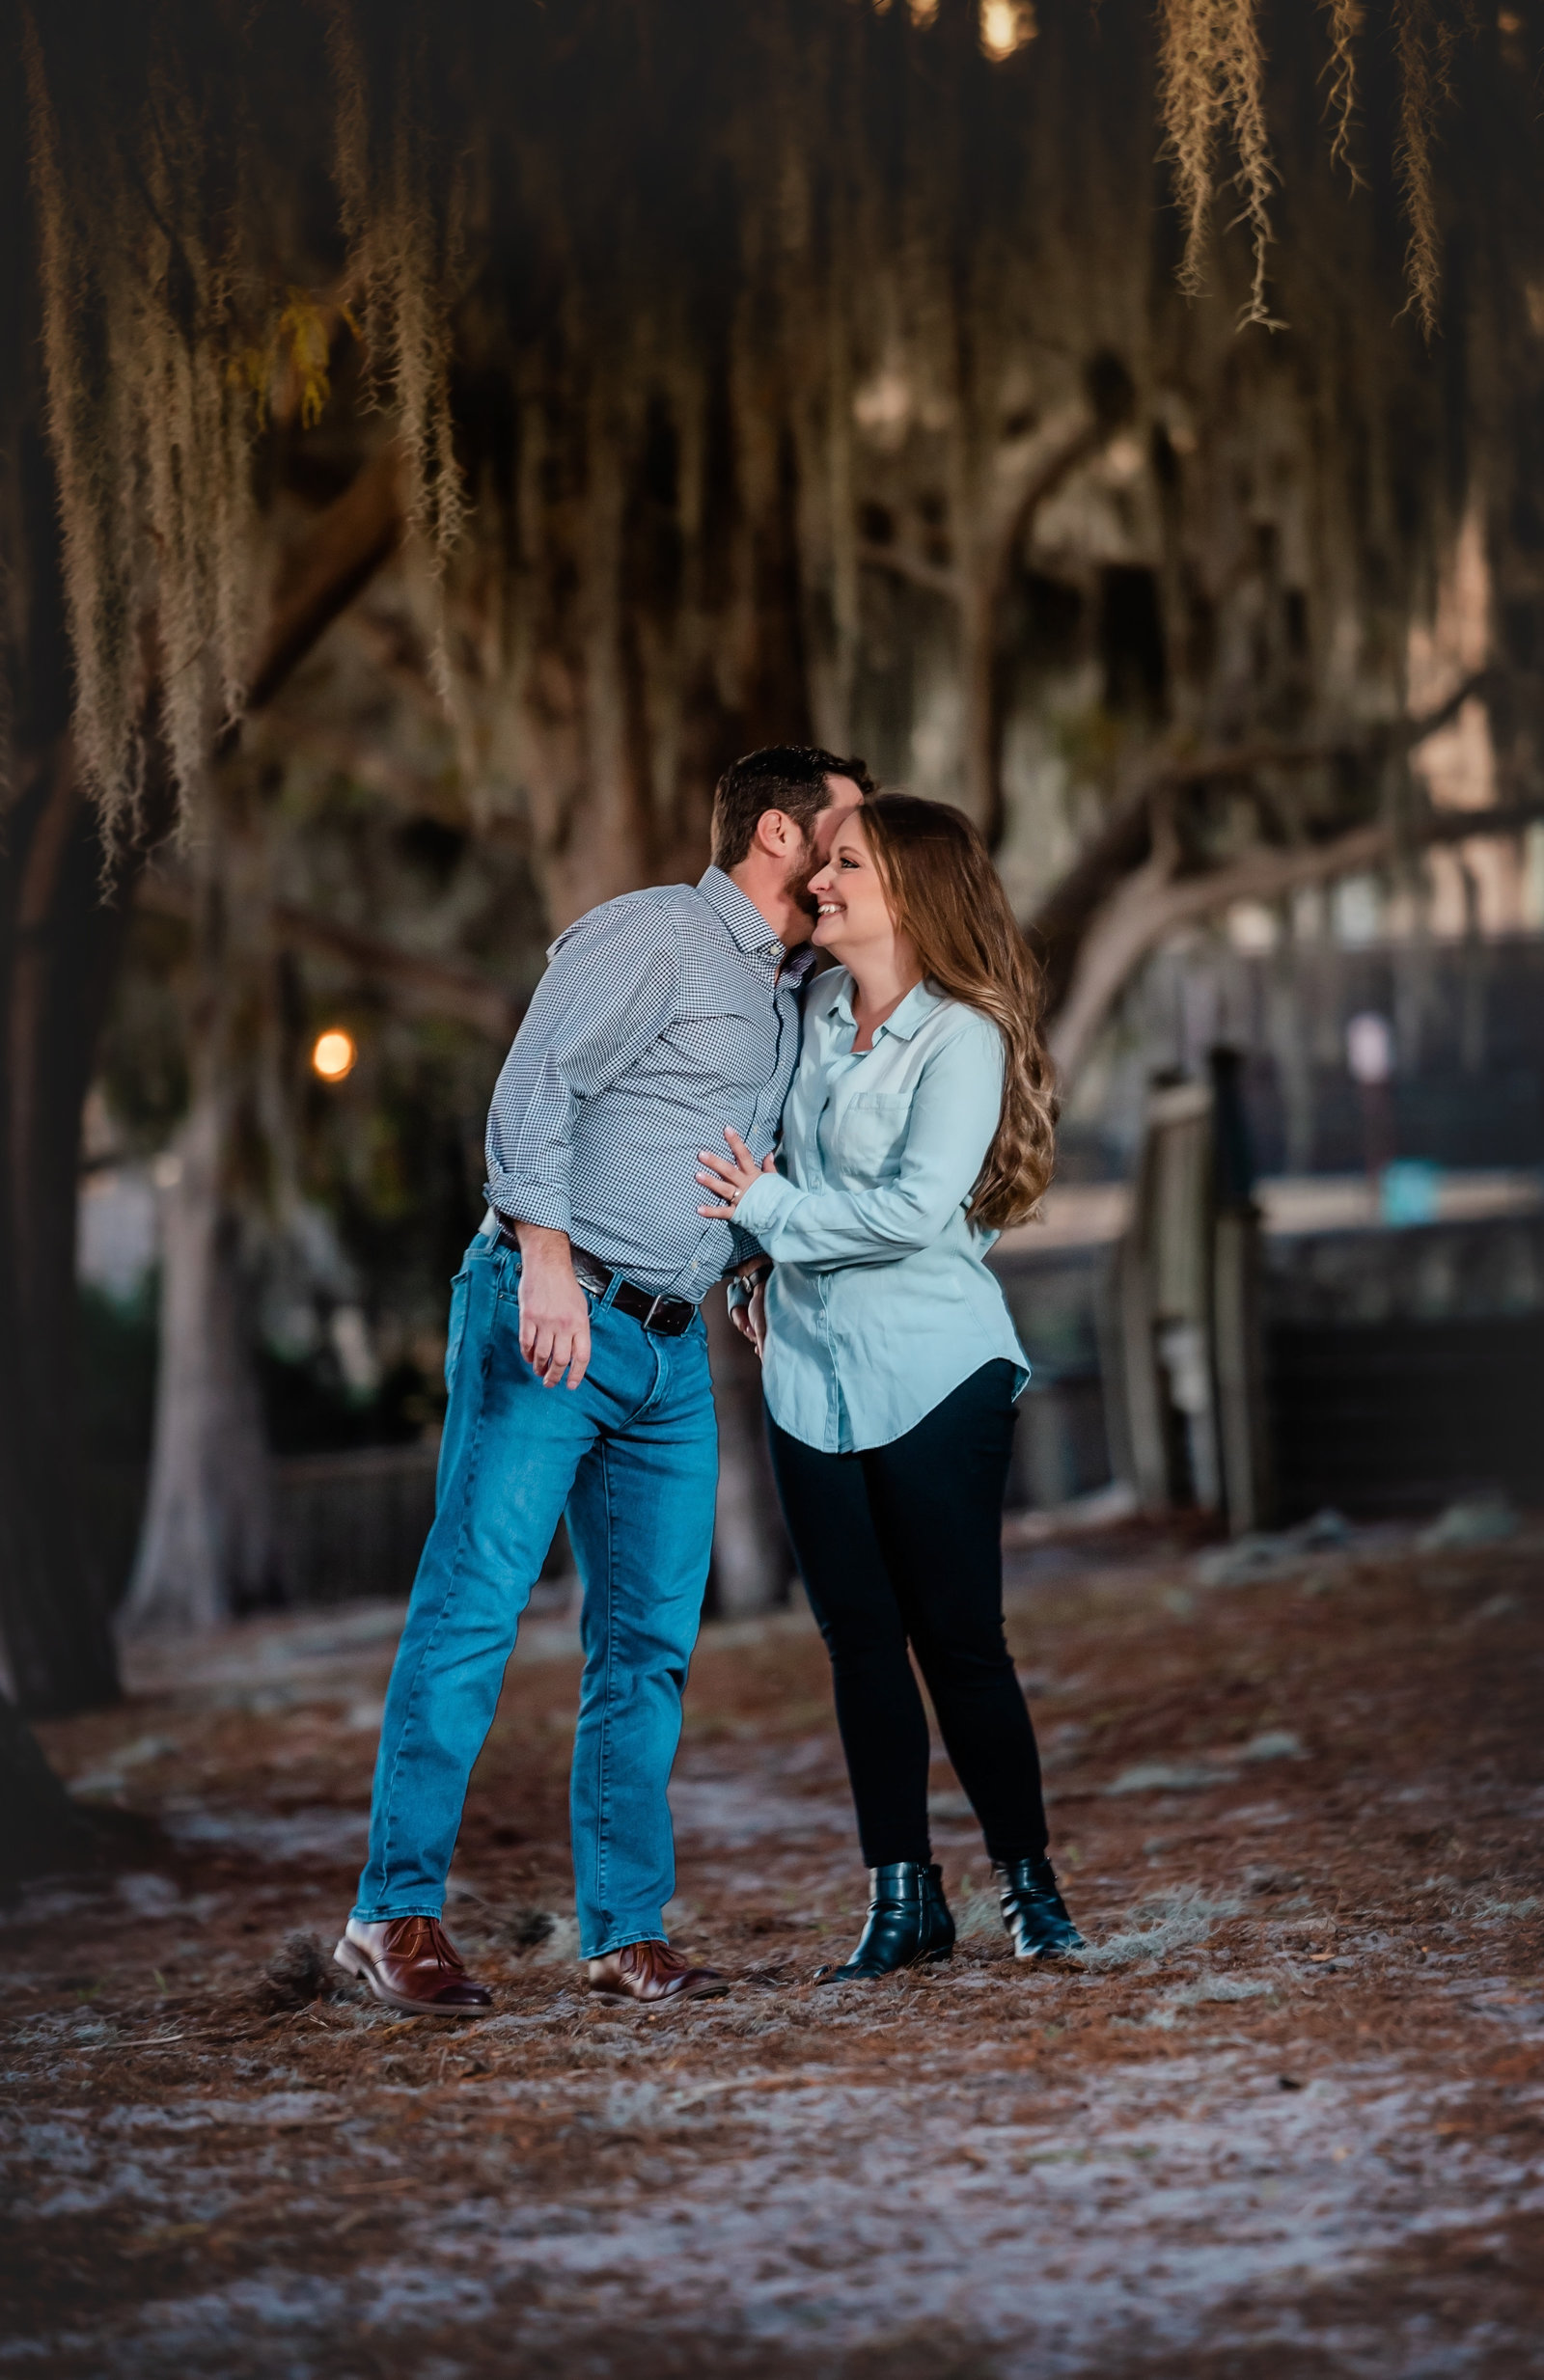 Orlando Florida Love couples Engagement Photos